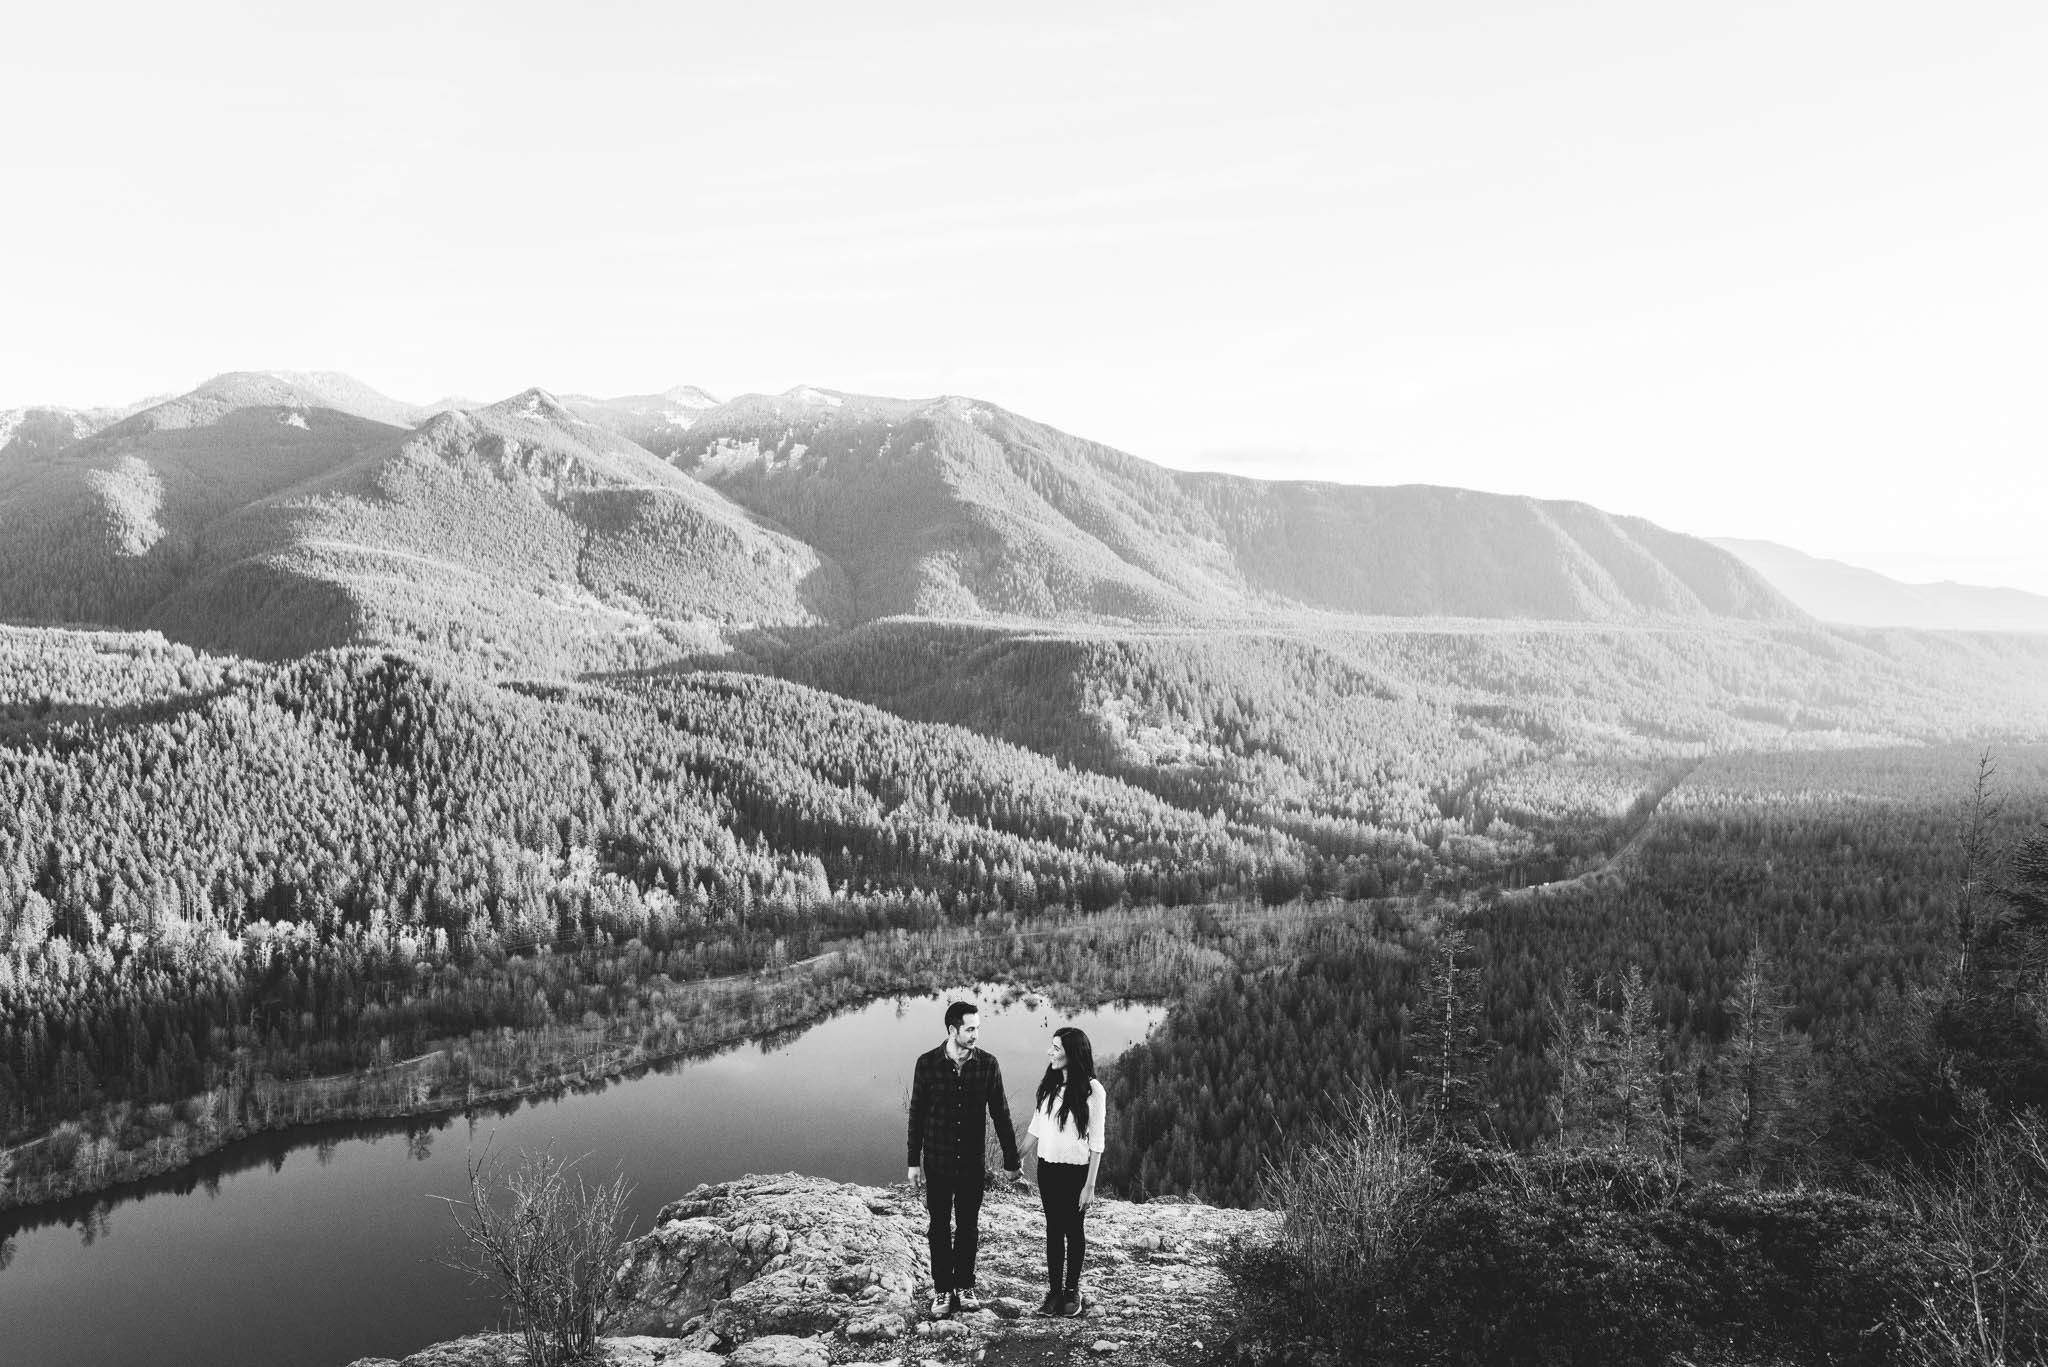 ©Isaiah-&-Taylor-Photography---Rattlesnake-Ledge-Trail-Engagement,-Seattle-Washington-043.jpg